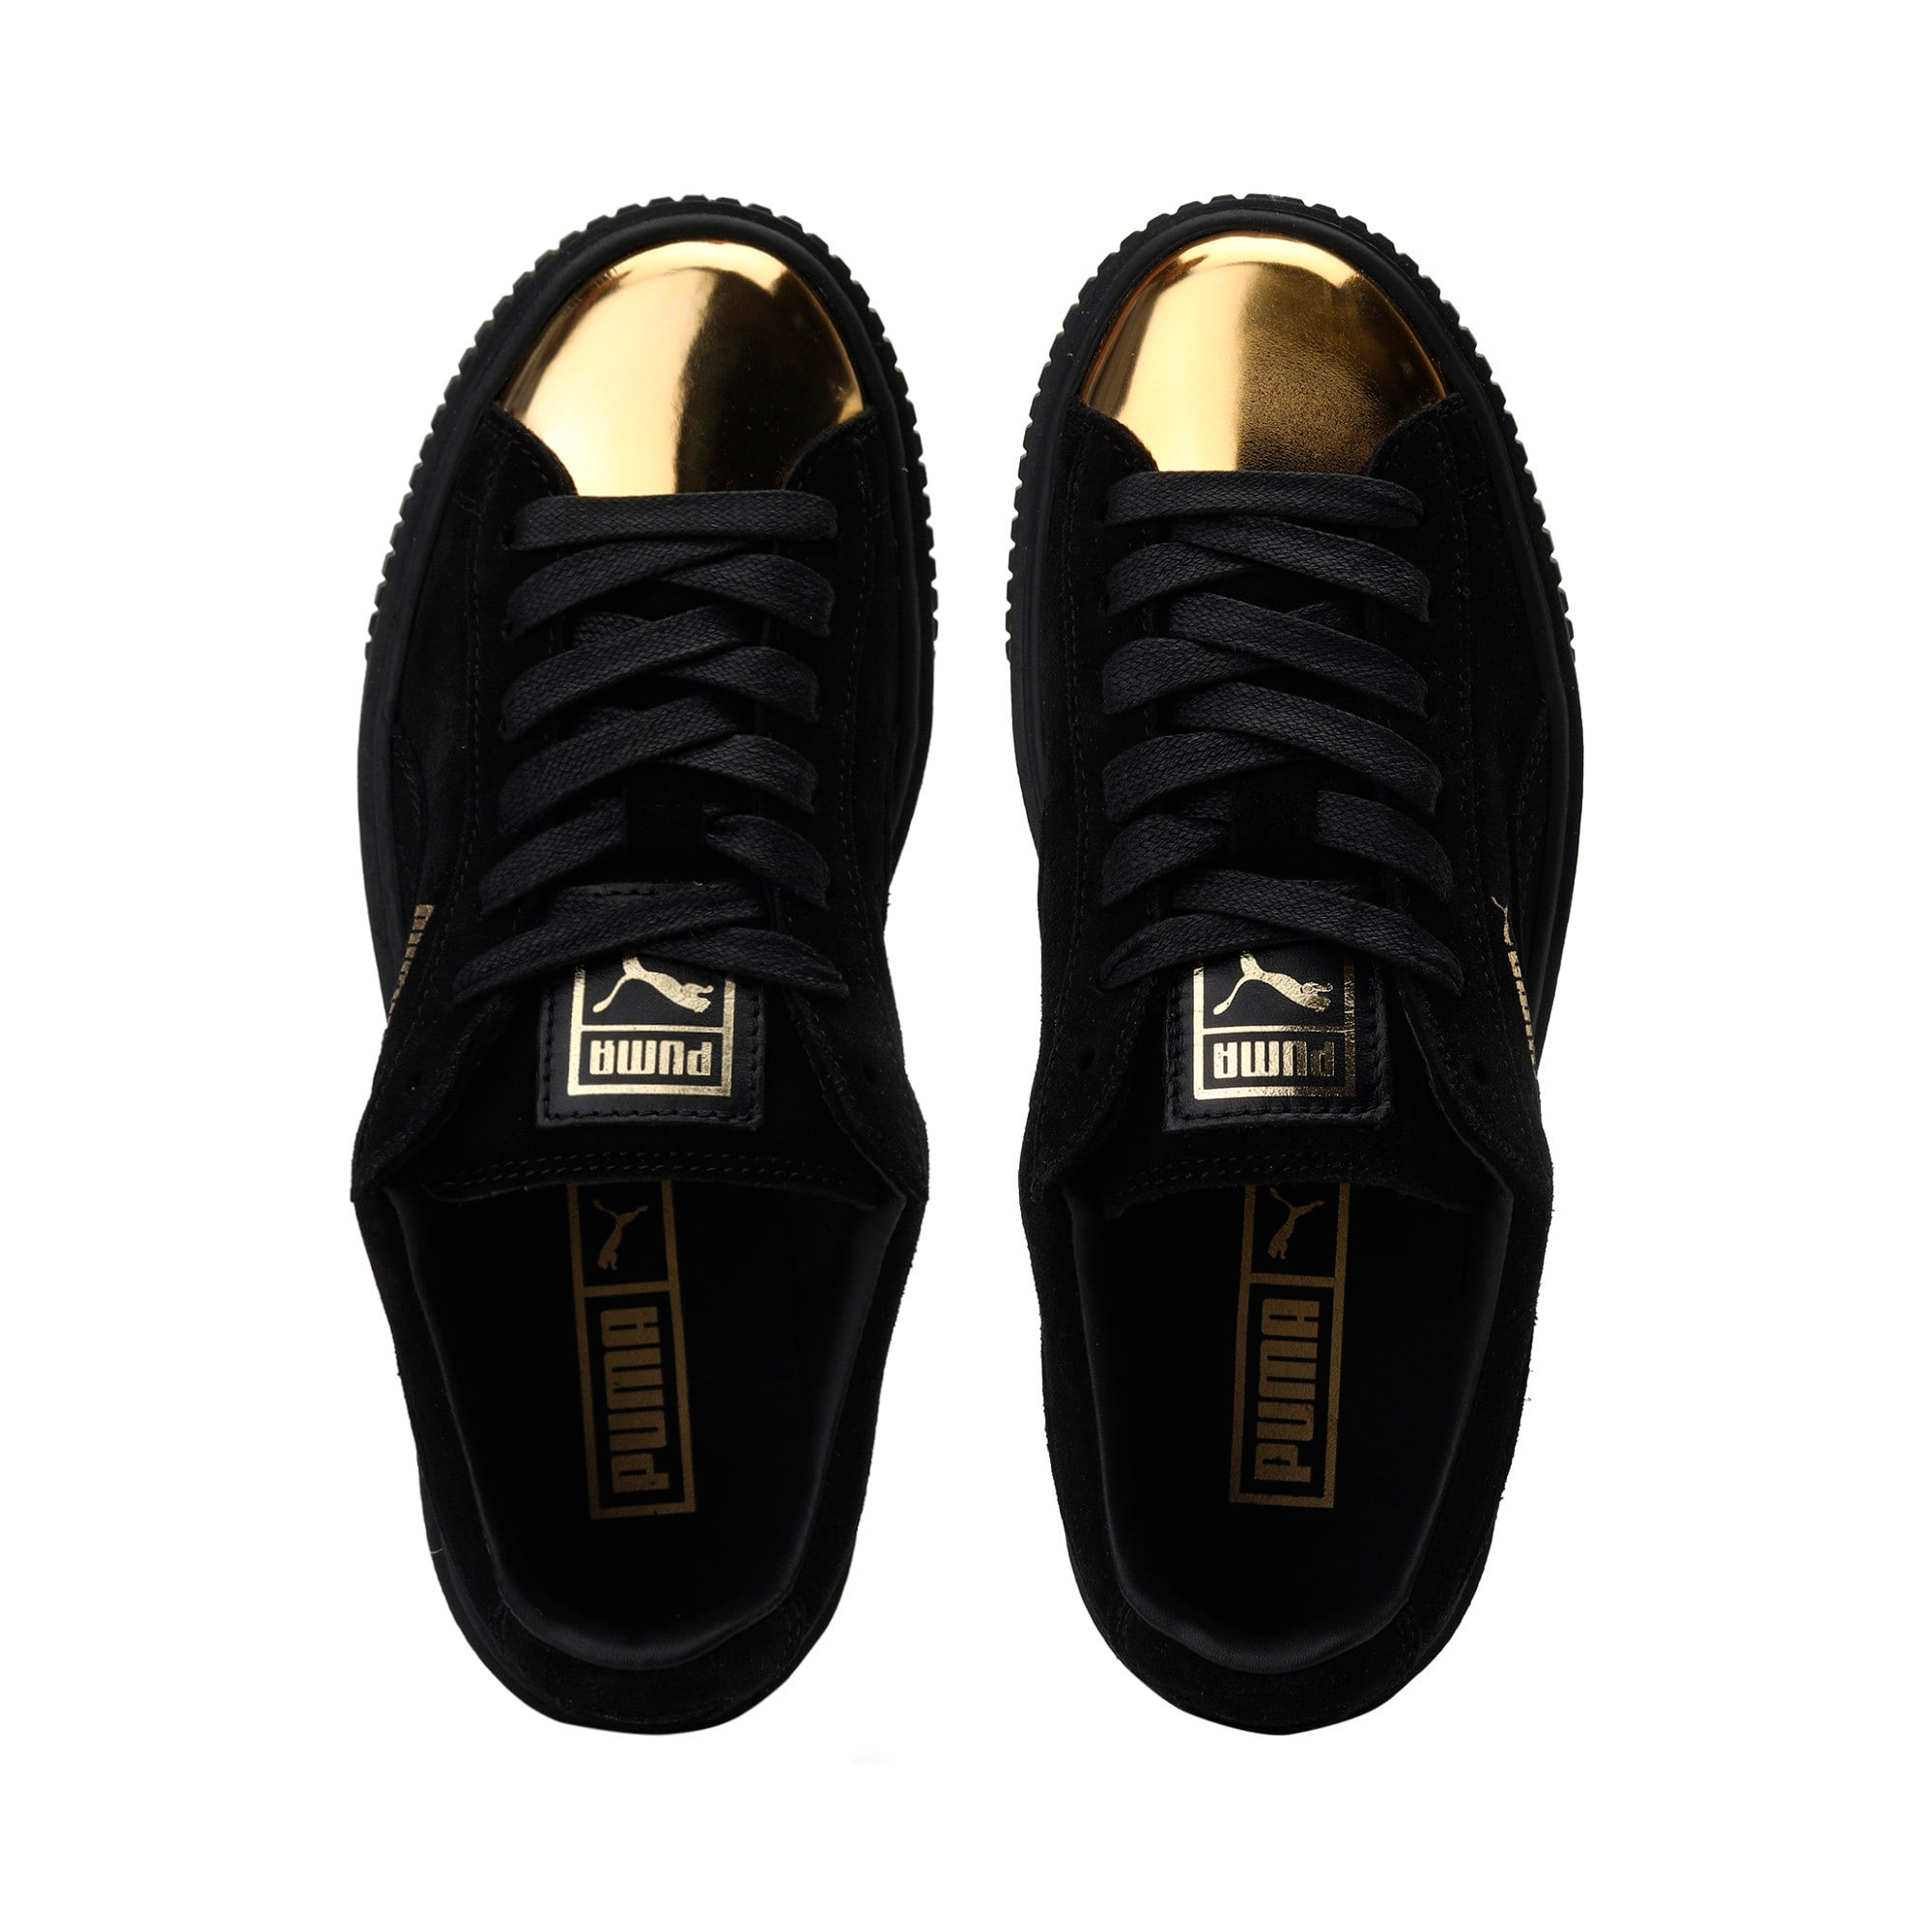 Thumbnail 6 of Suede Platform GOLD Women's Trainers, Gold-Puma Black-Puma Black, medium-IND